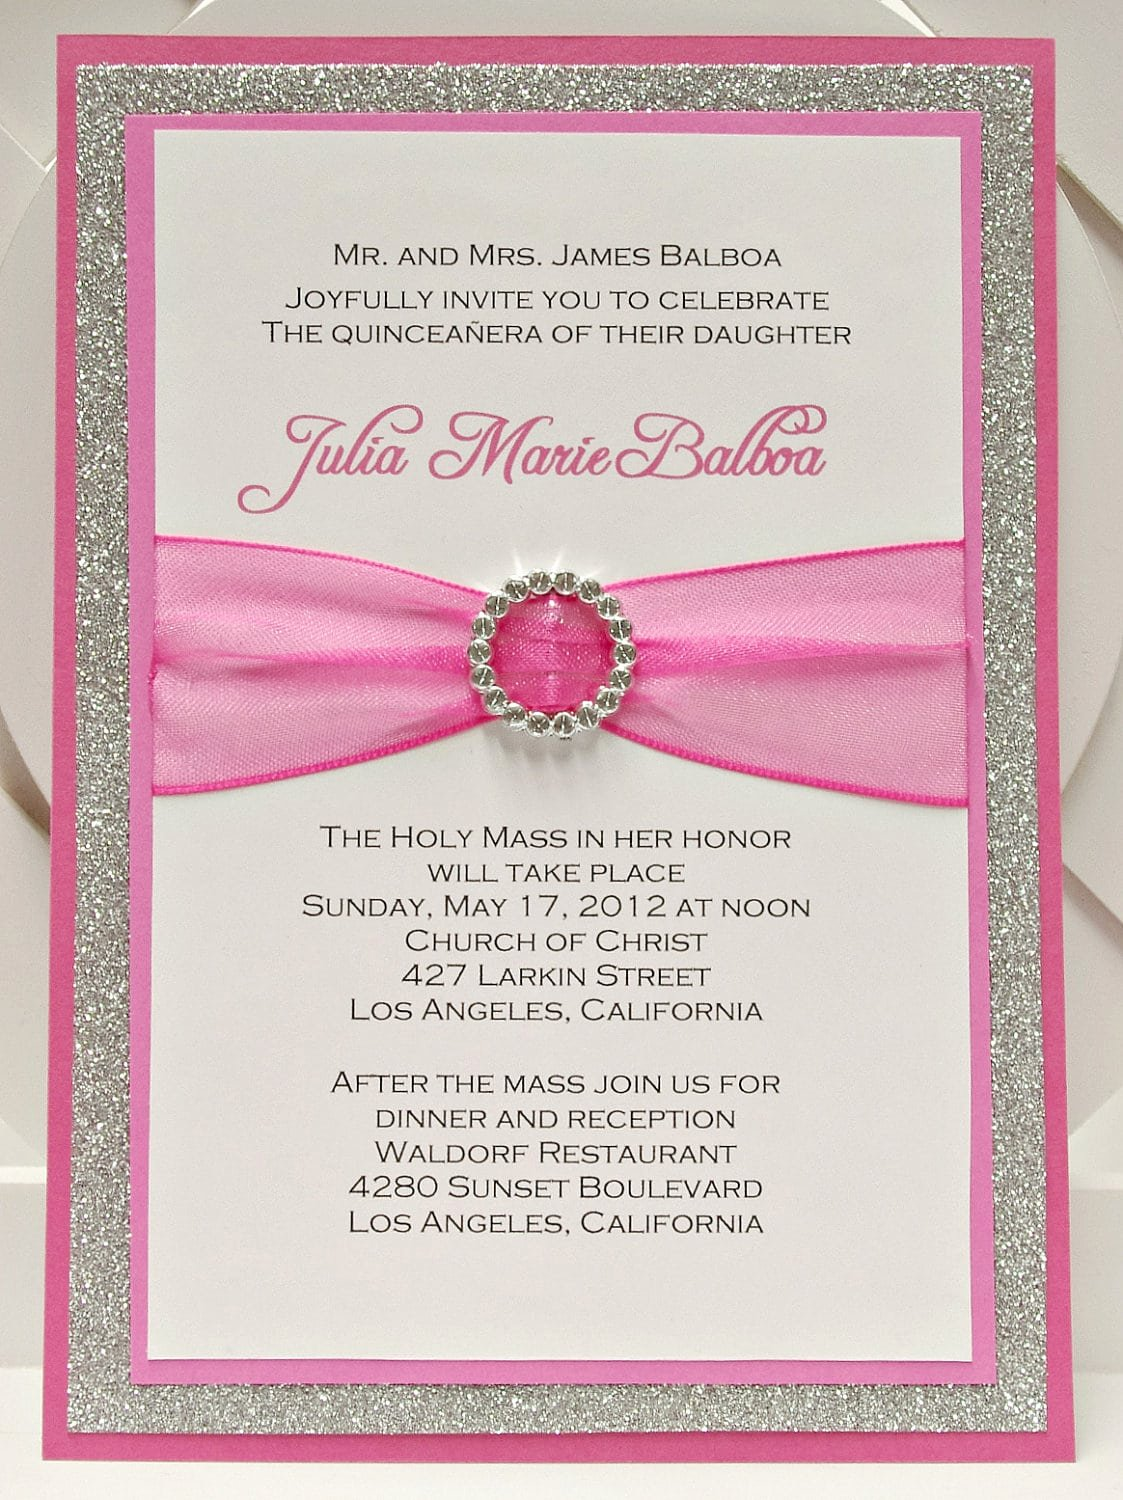 Quinceanera Invitation Templates Free Awesome Template for Quinceanera Invitation Free